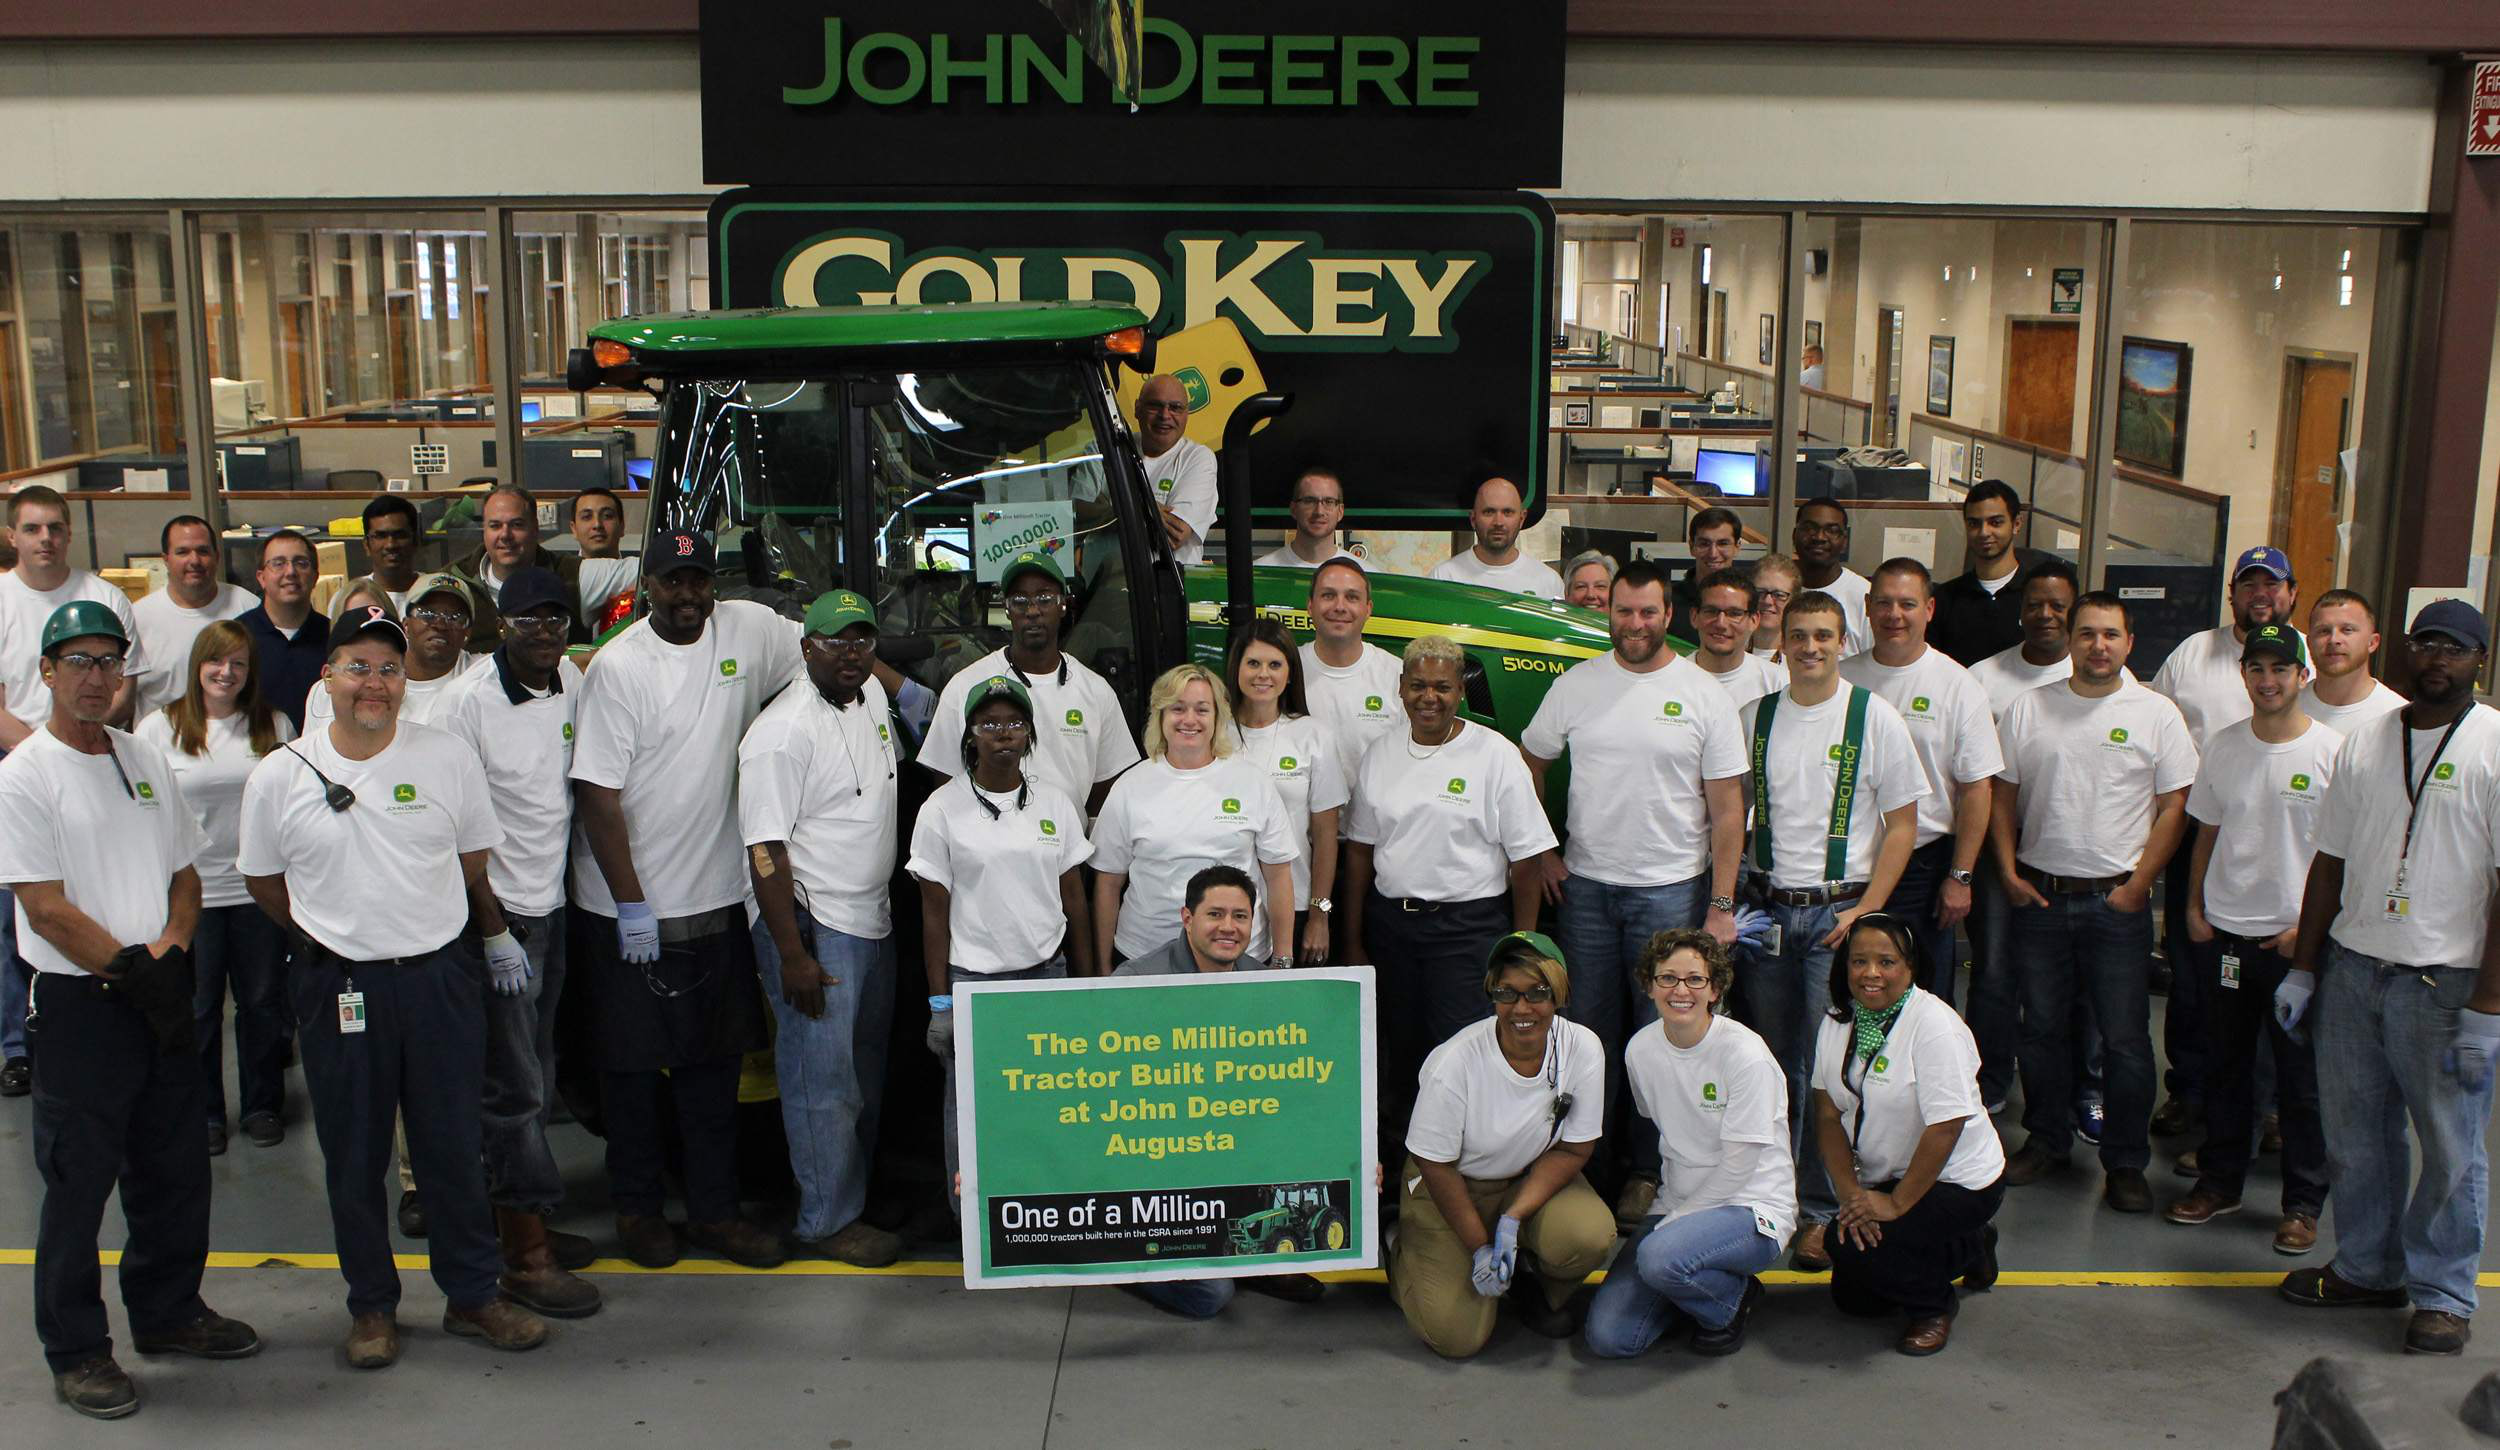 John Deere Factory Rolls Out One Millionth Tractor